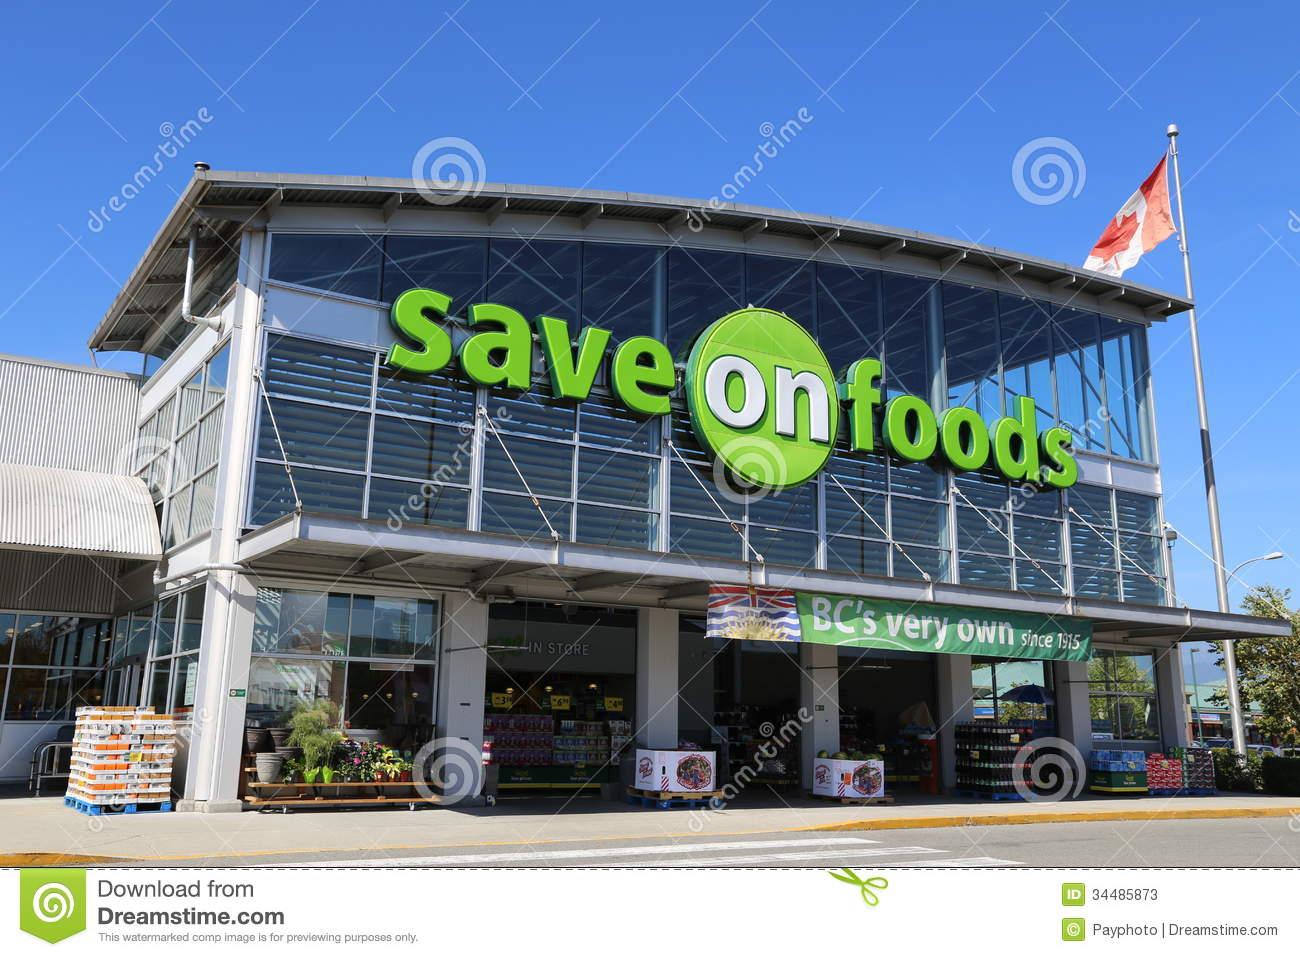 Coquitlam (BC) Canada  city pictures gallery : Save on foods in Port Coquitlam BC Canada.